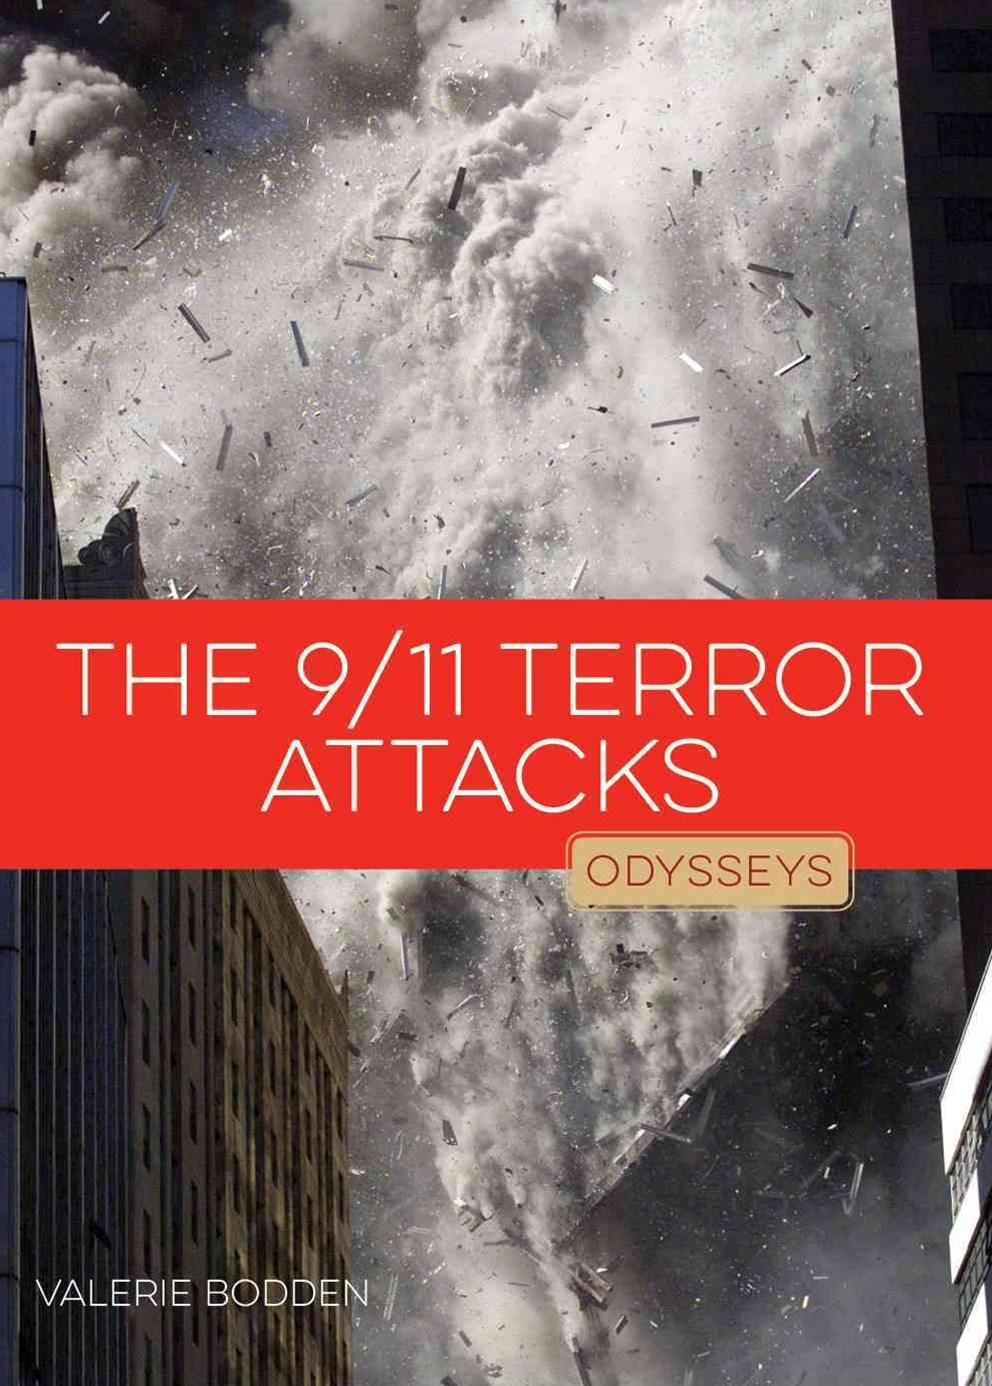 The 9/11 Terror Attacks